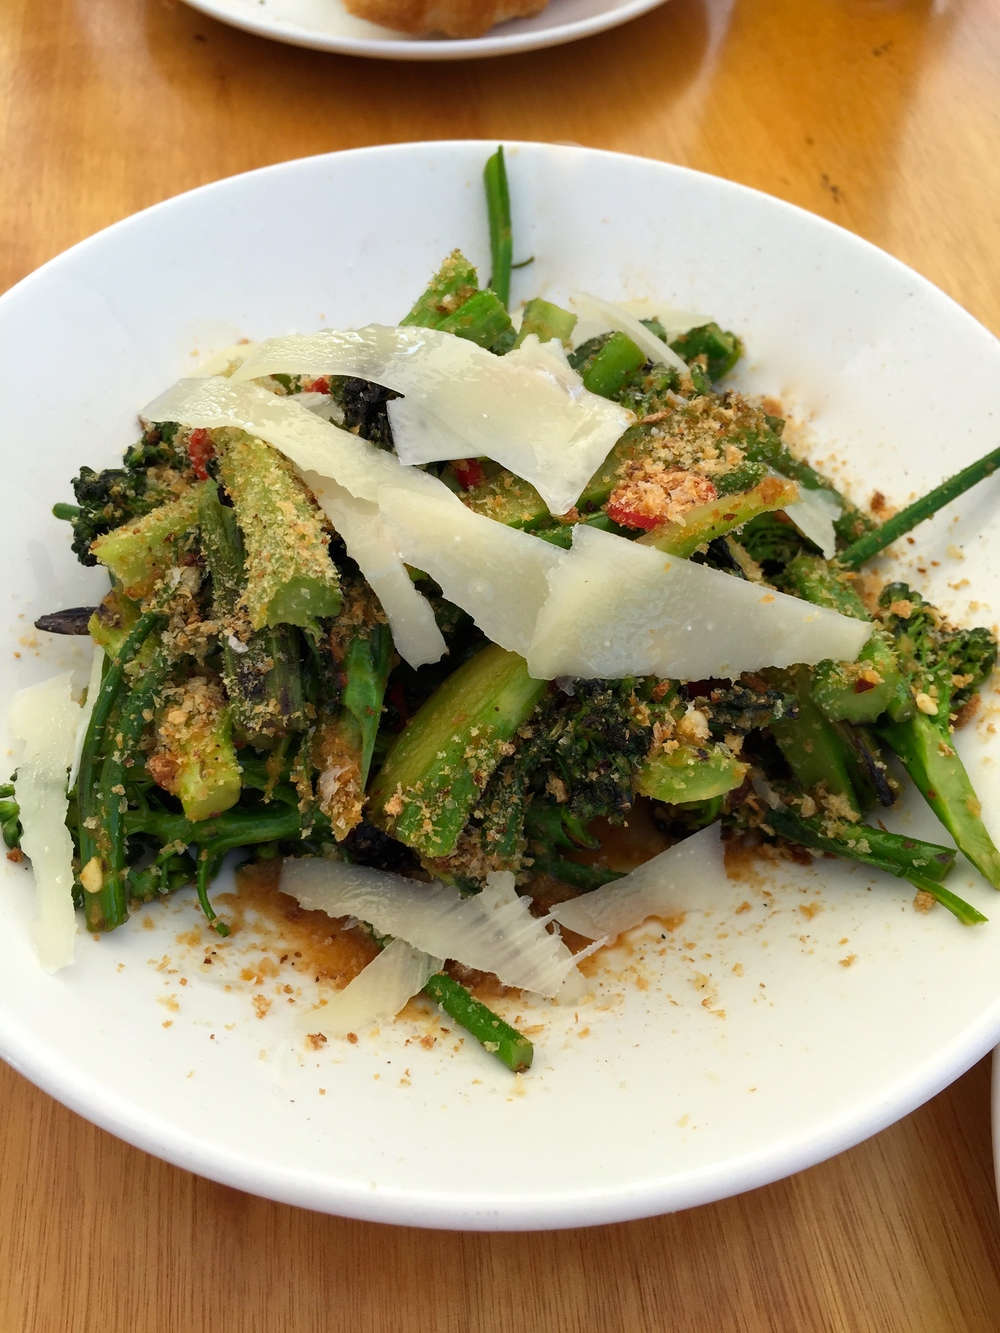 Sprouting broccoli, garlic, pickled chillis, pecorino romano, and breadcrumbs.